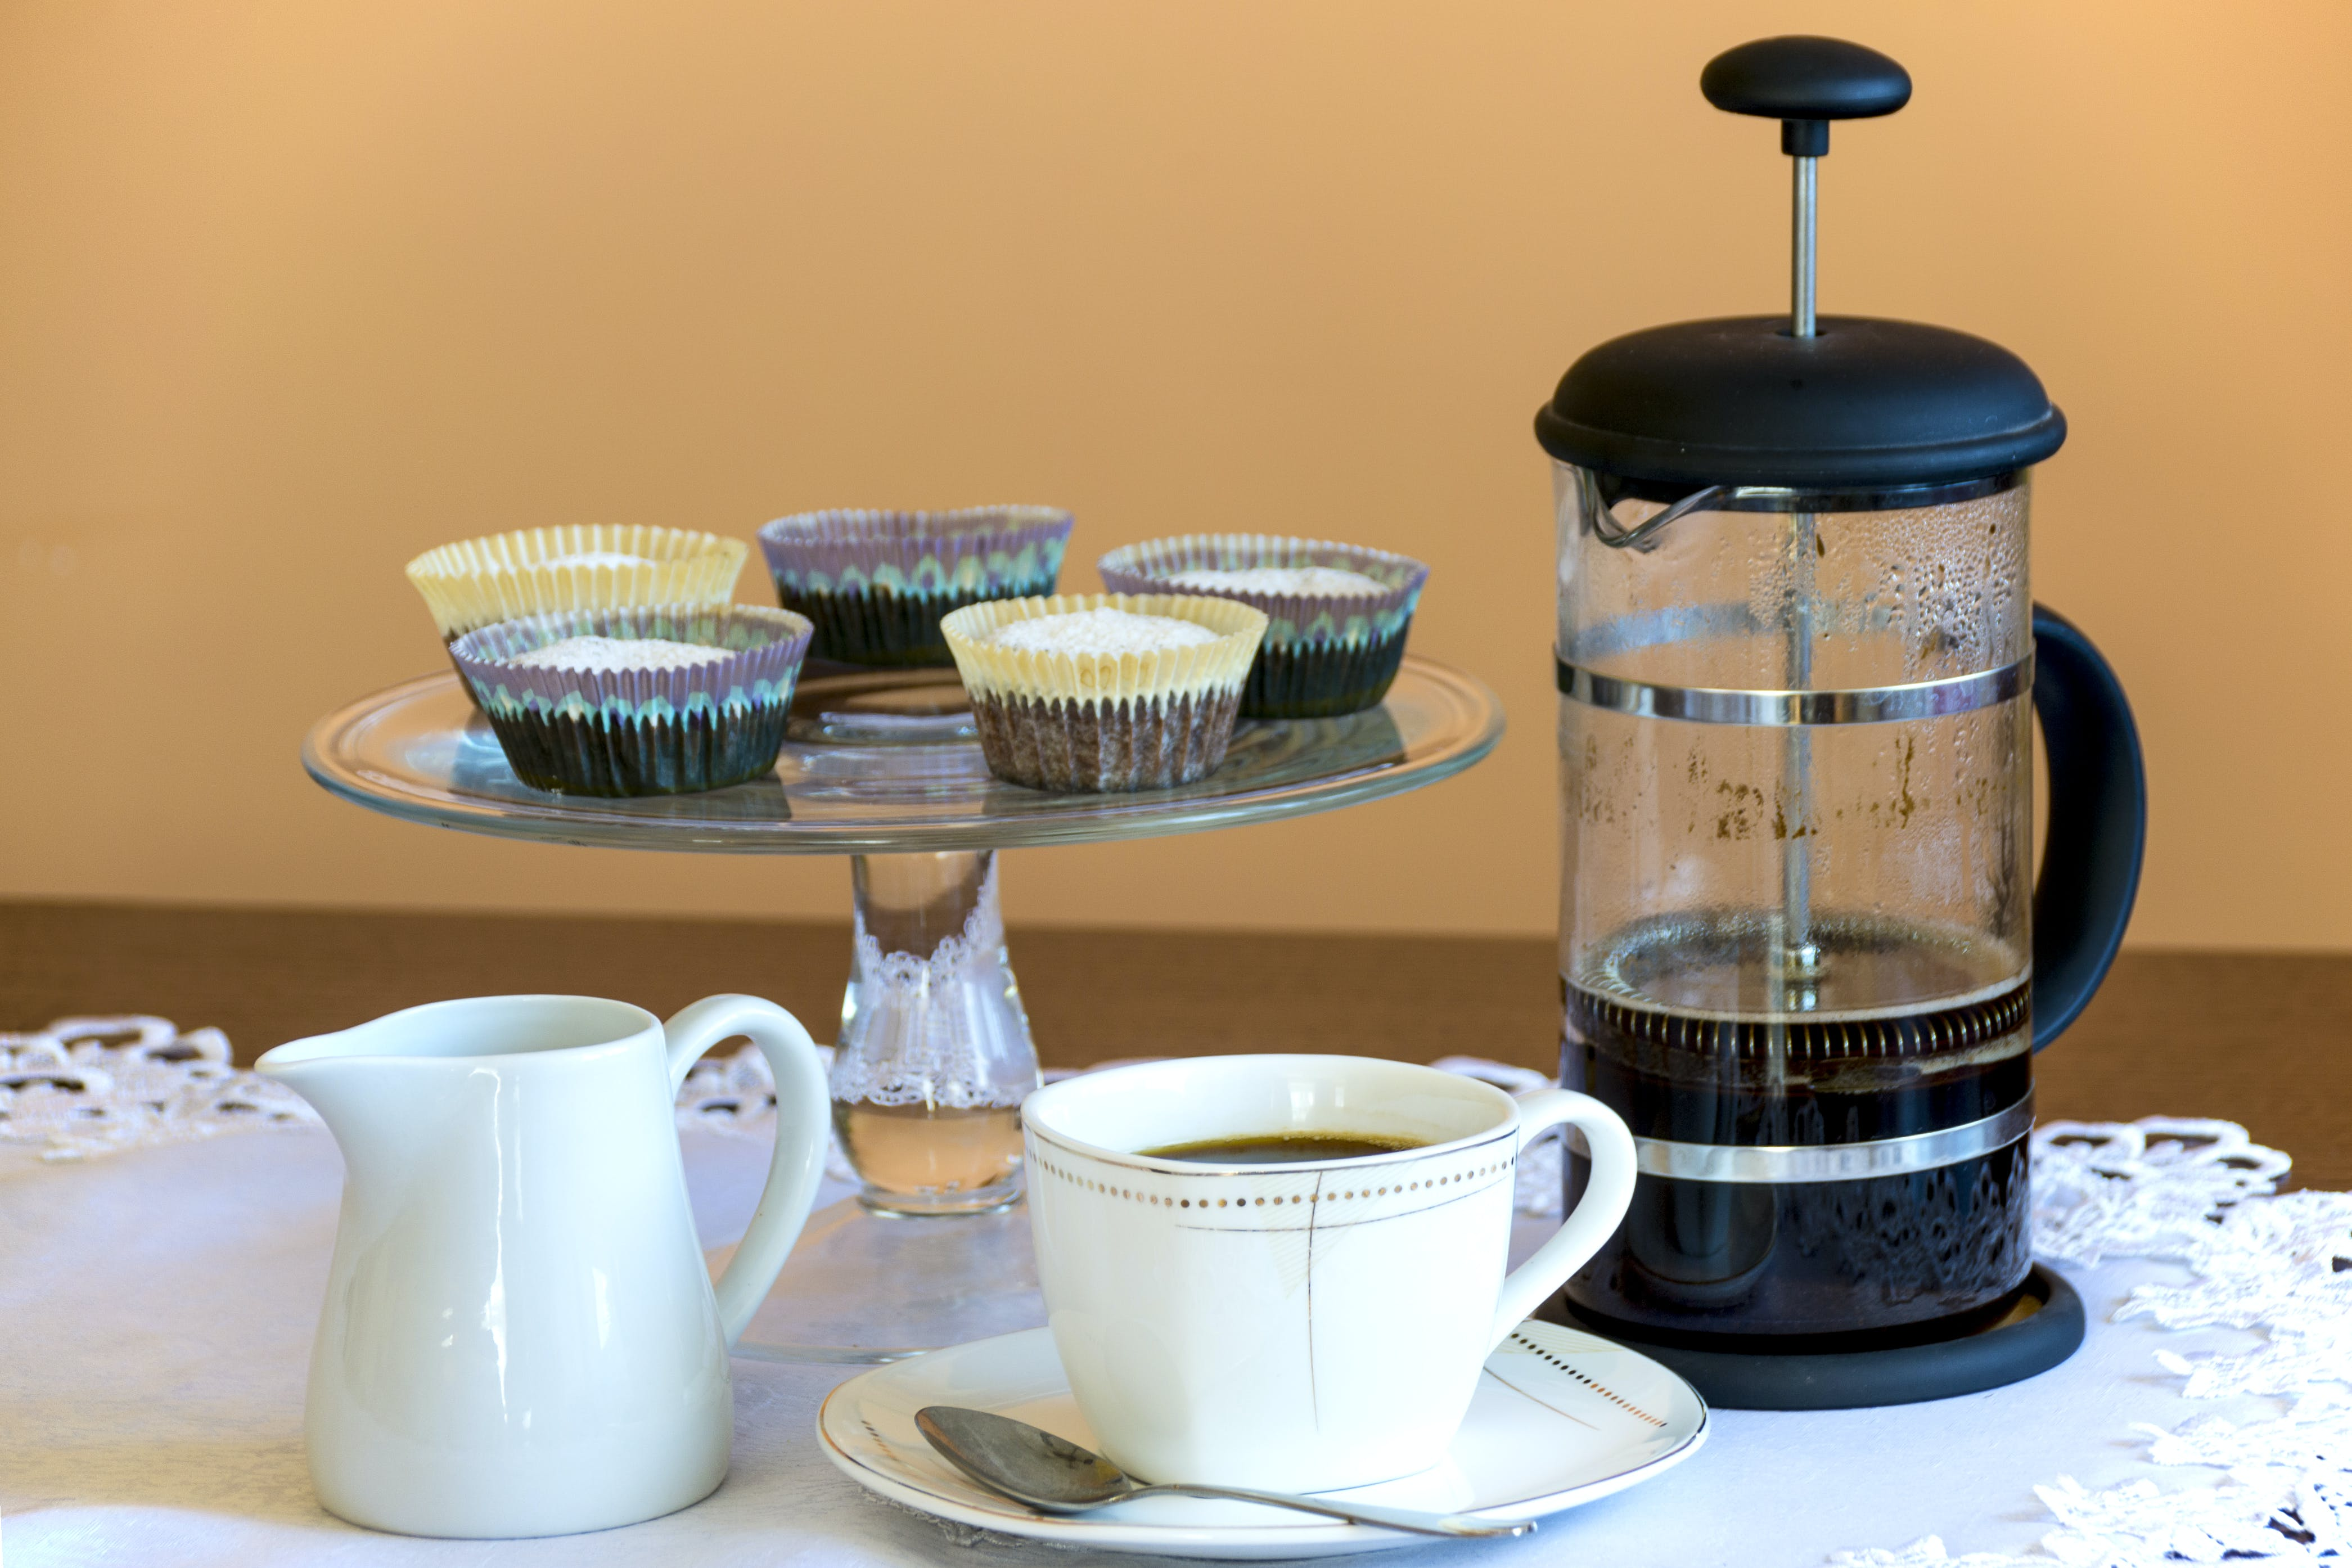 French Press Beside Footed Rack of Cupcakes